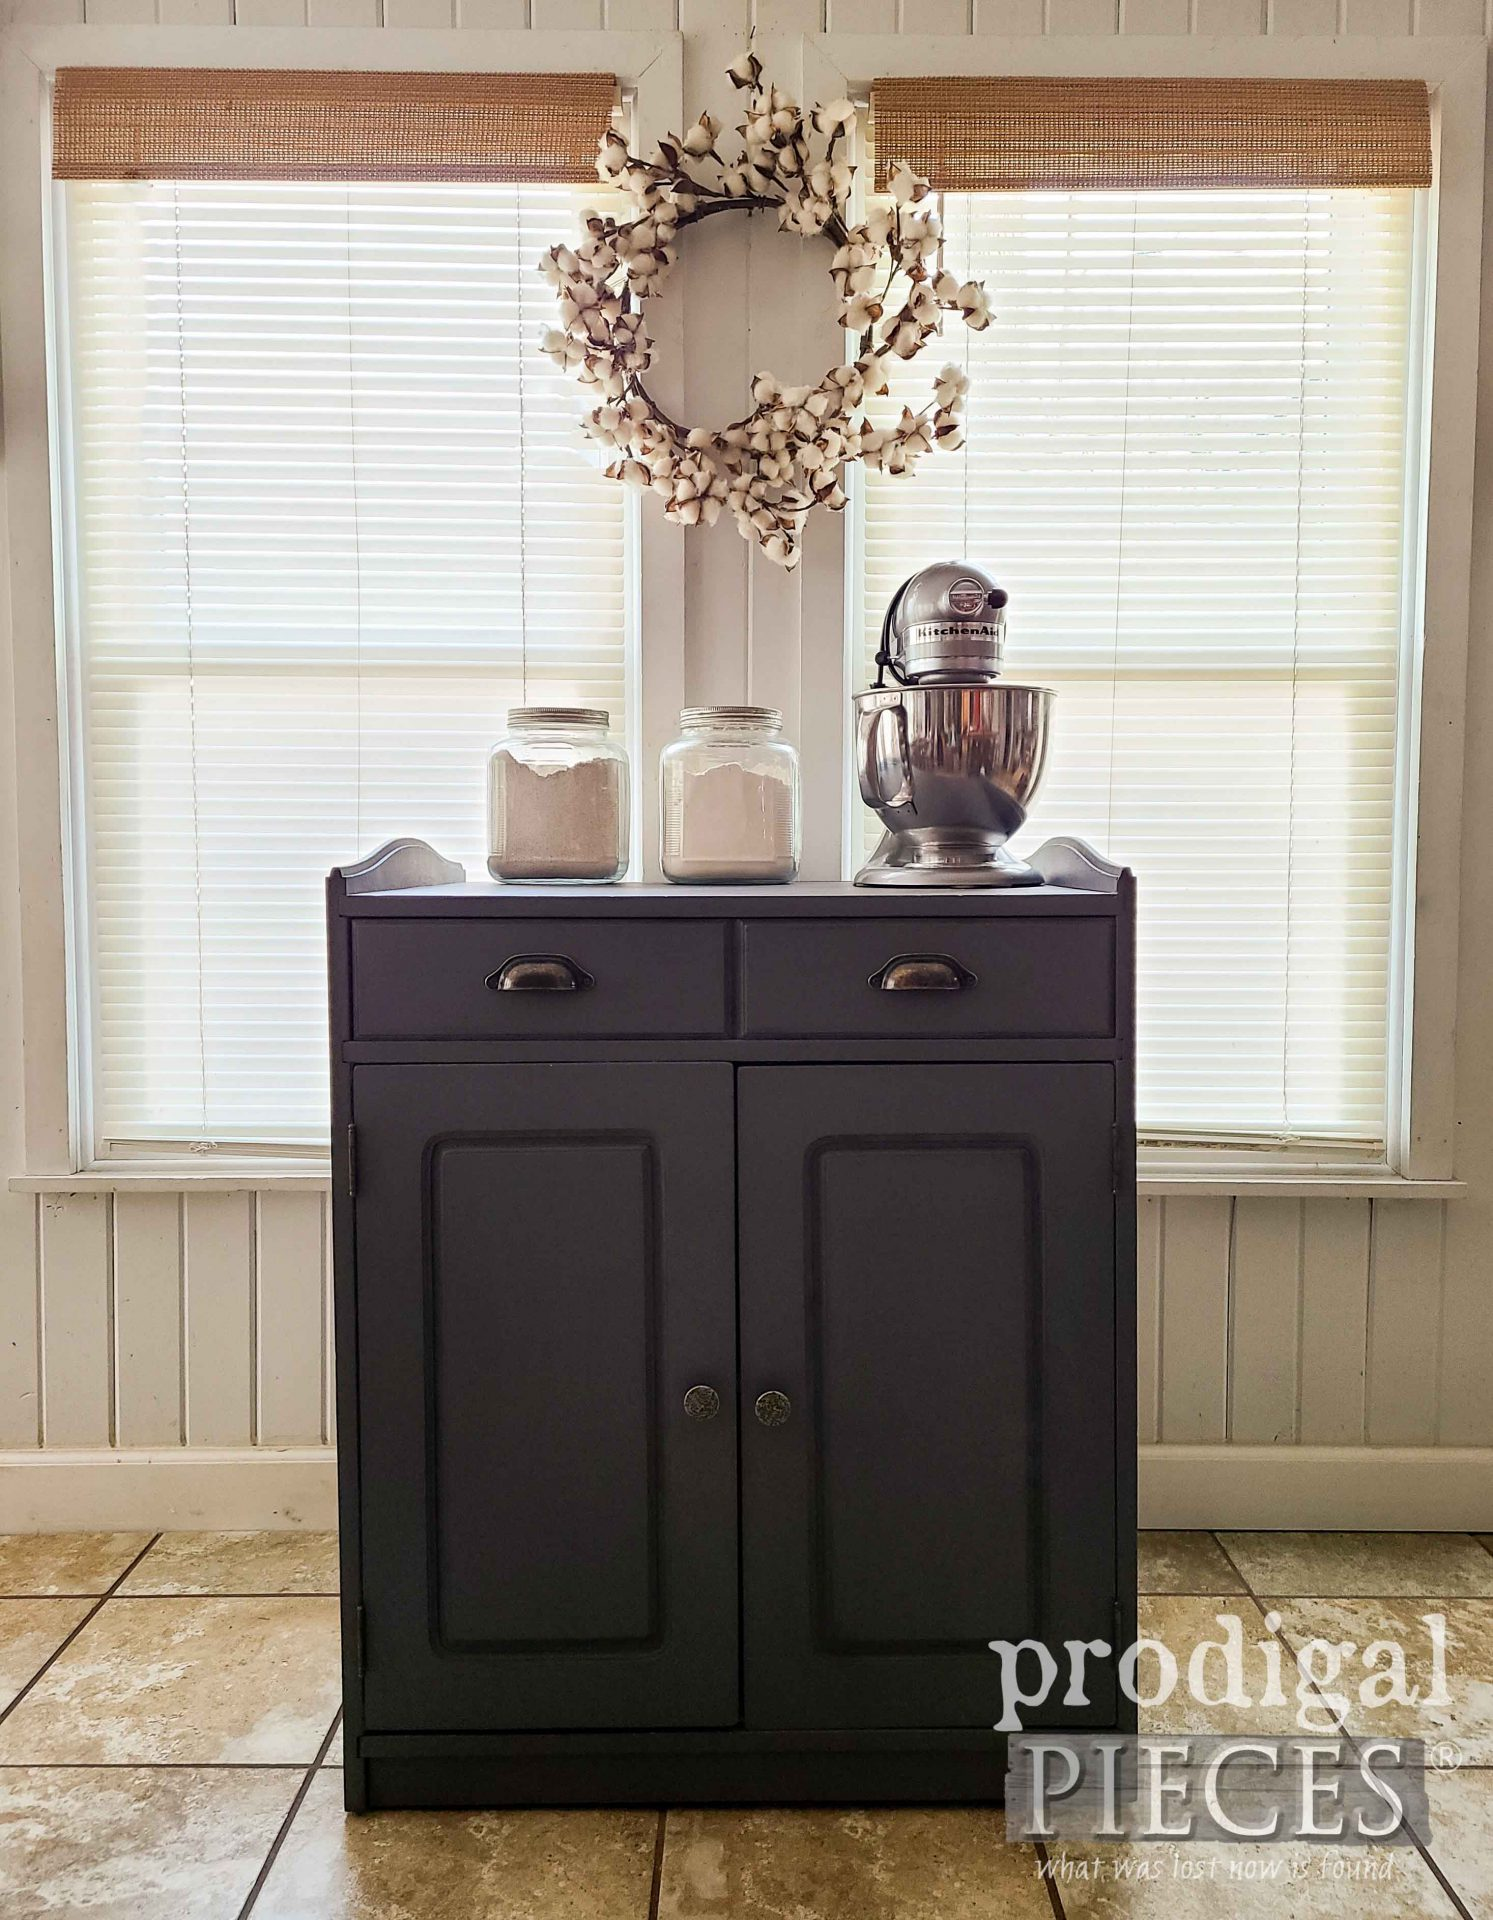 DIY Farmhouse Baking Cabinet on Casters with Built-In Cutting Board by Larissa of Prodigal Pieces | prodigalpieces.com #prodigalpieces #farmhouse #diy #home #homedecor #kitchen